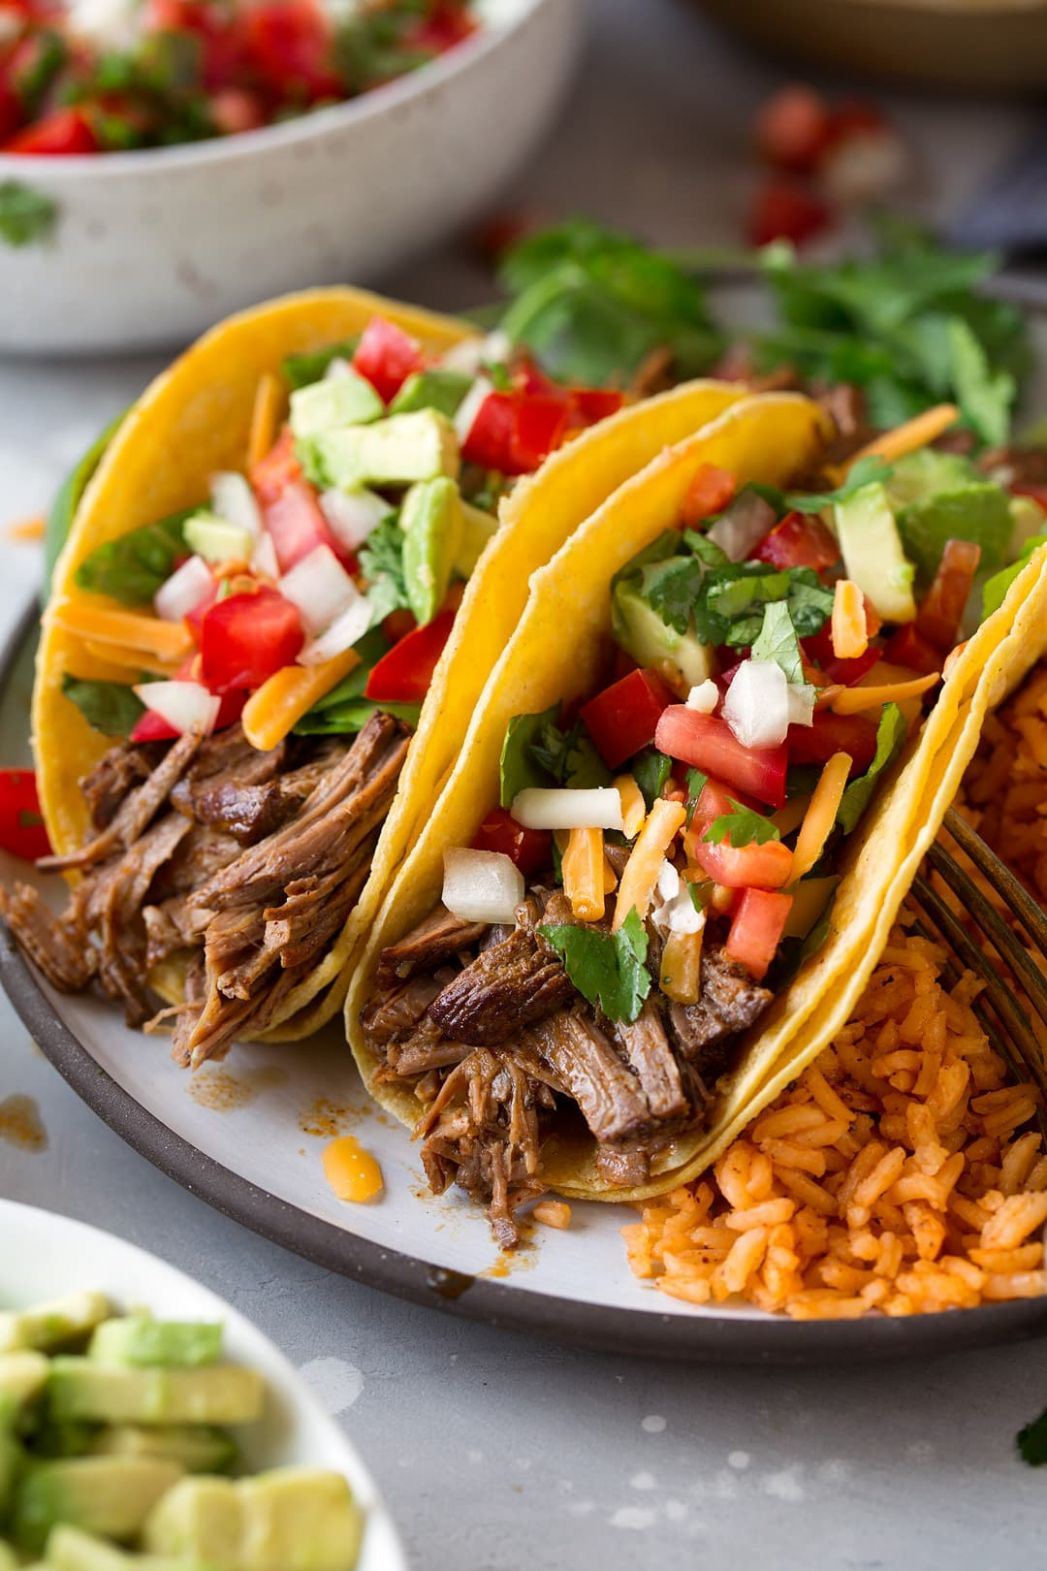 Slow Cooker Shredded Beef Tacos - Cooking Classy